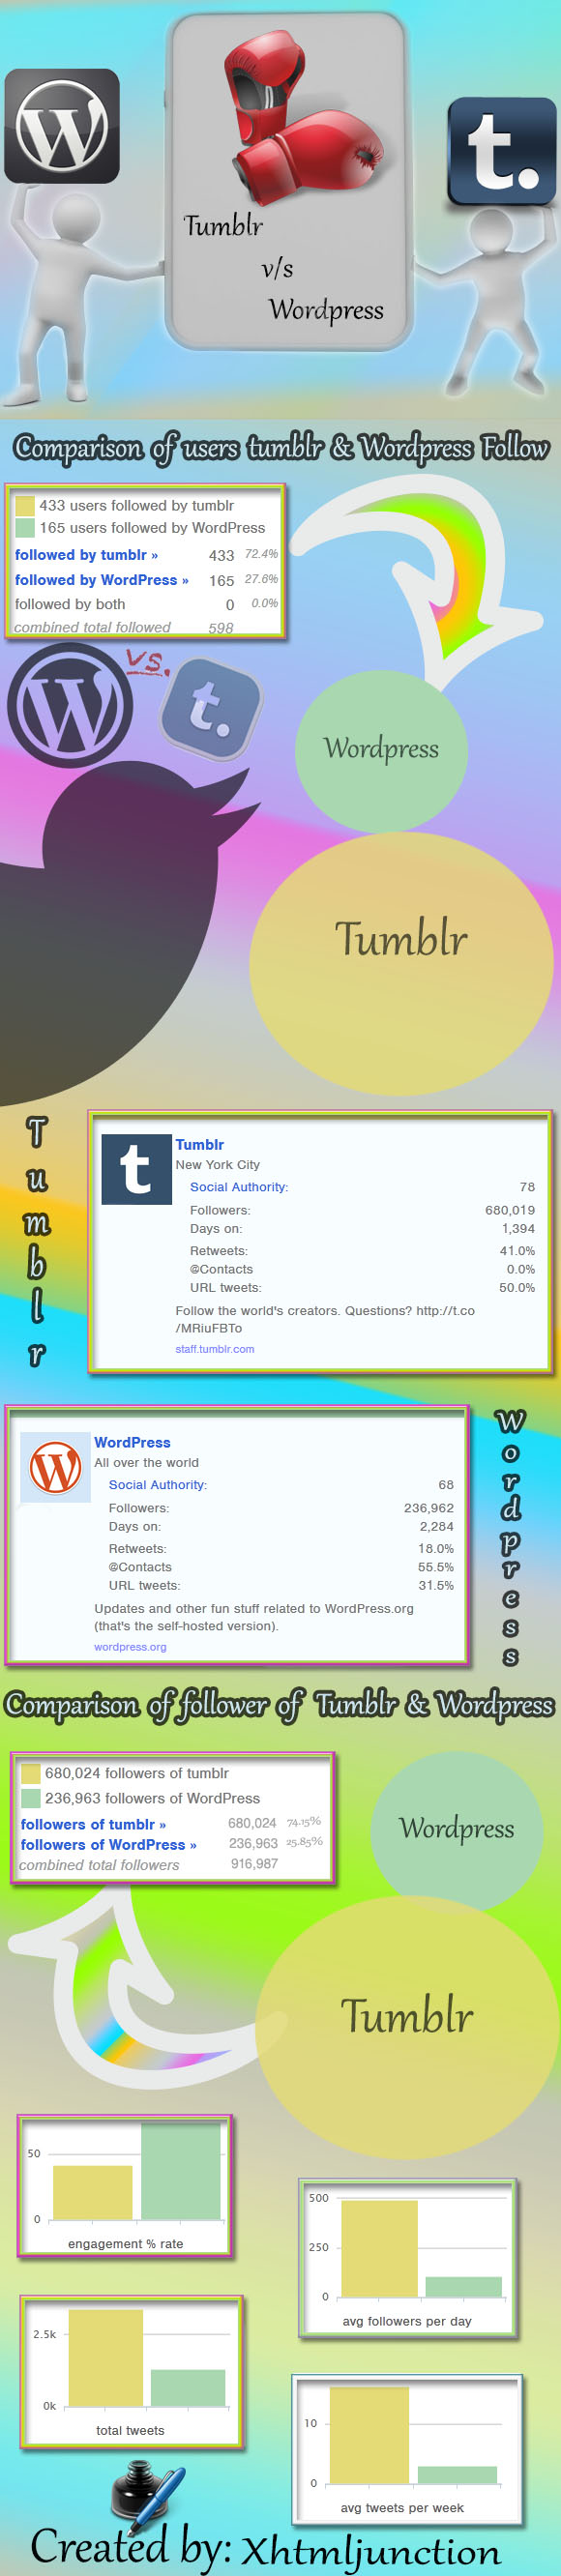 tumblr-vs-wordpress infographic